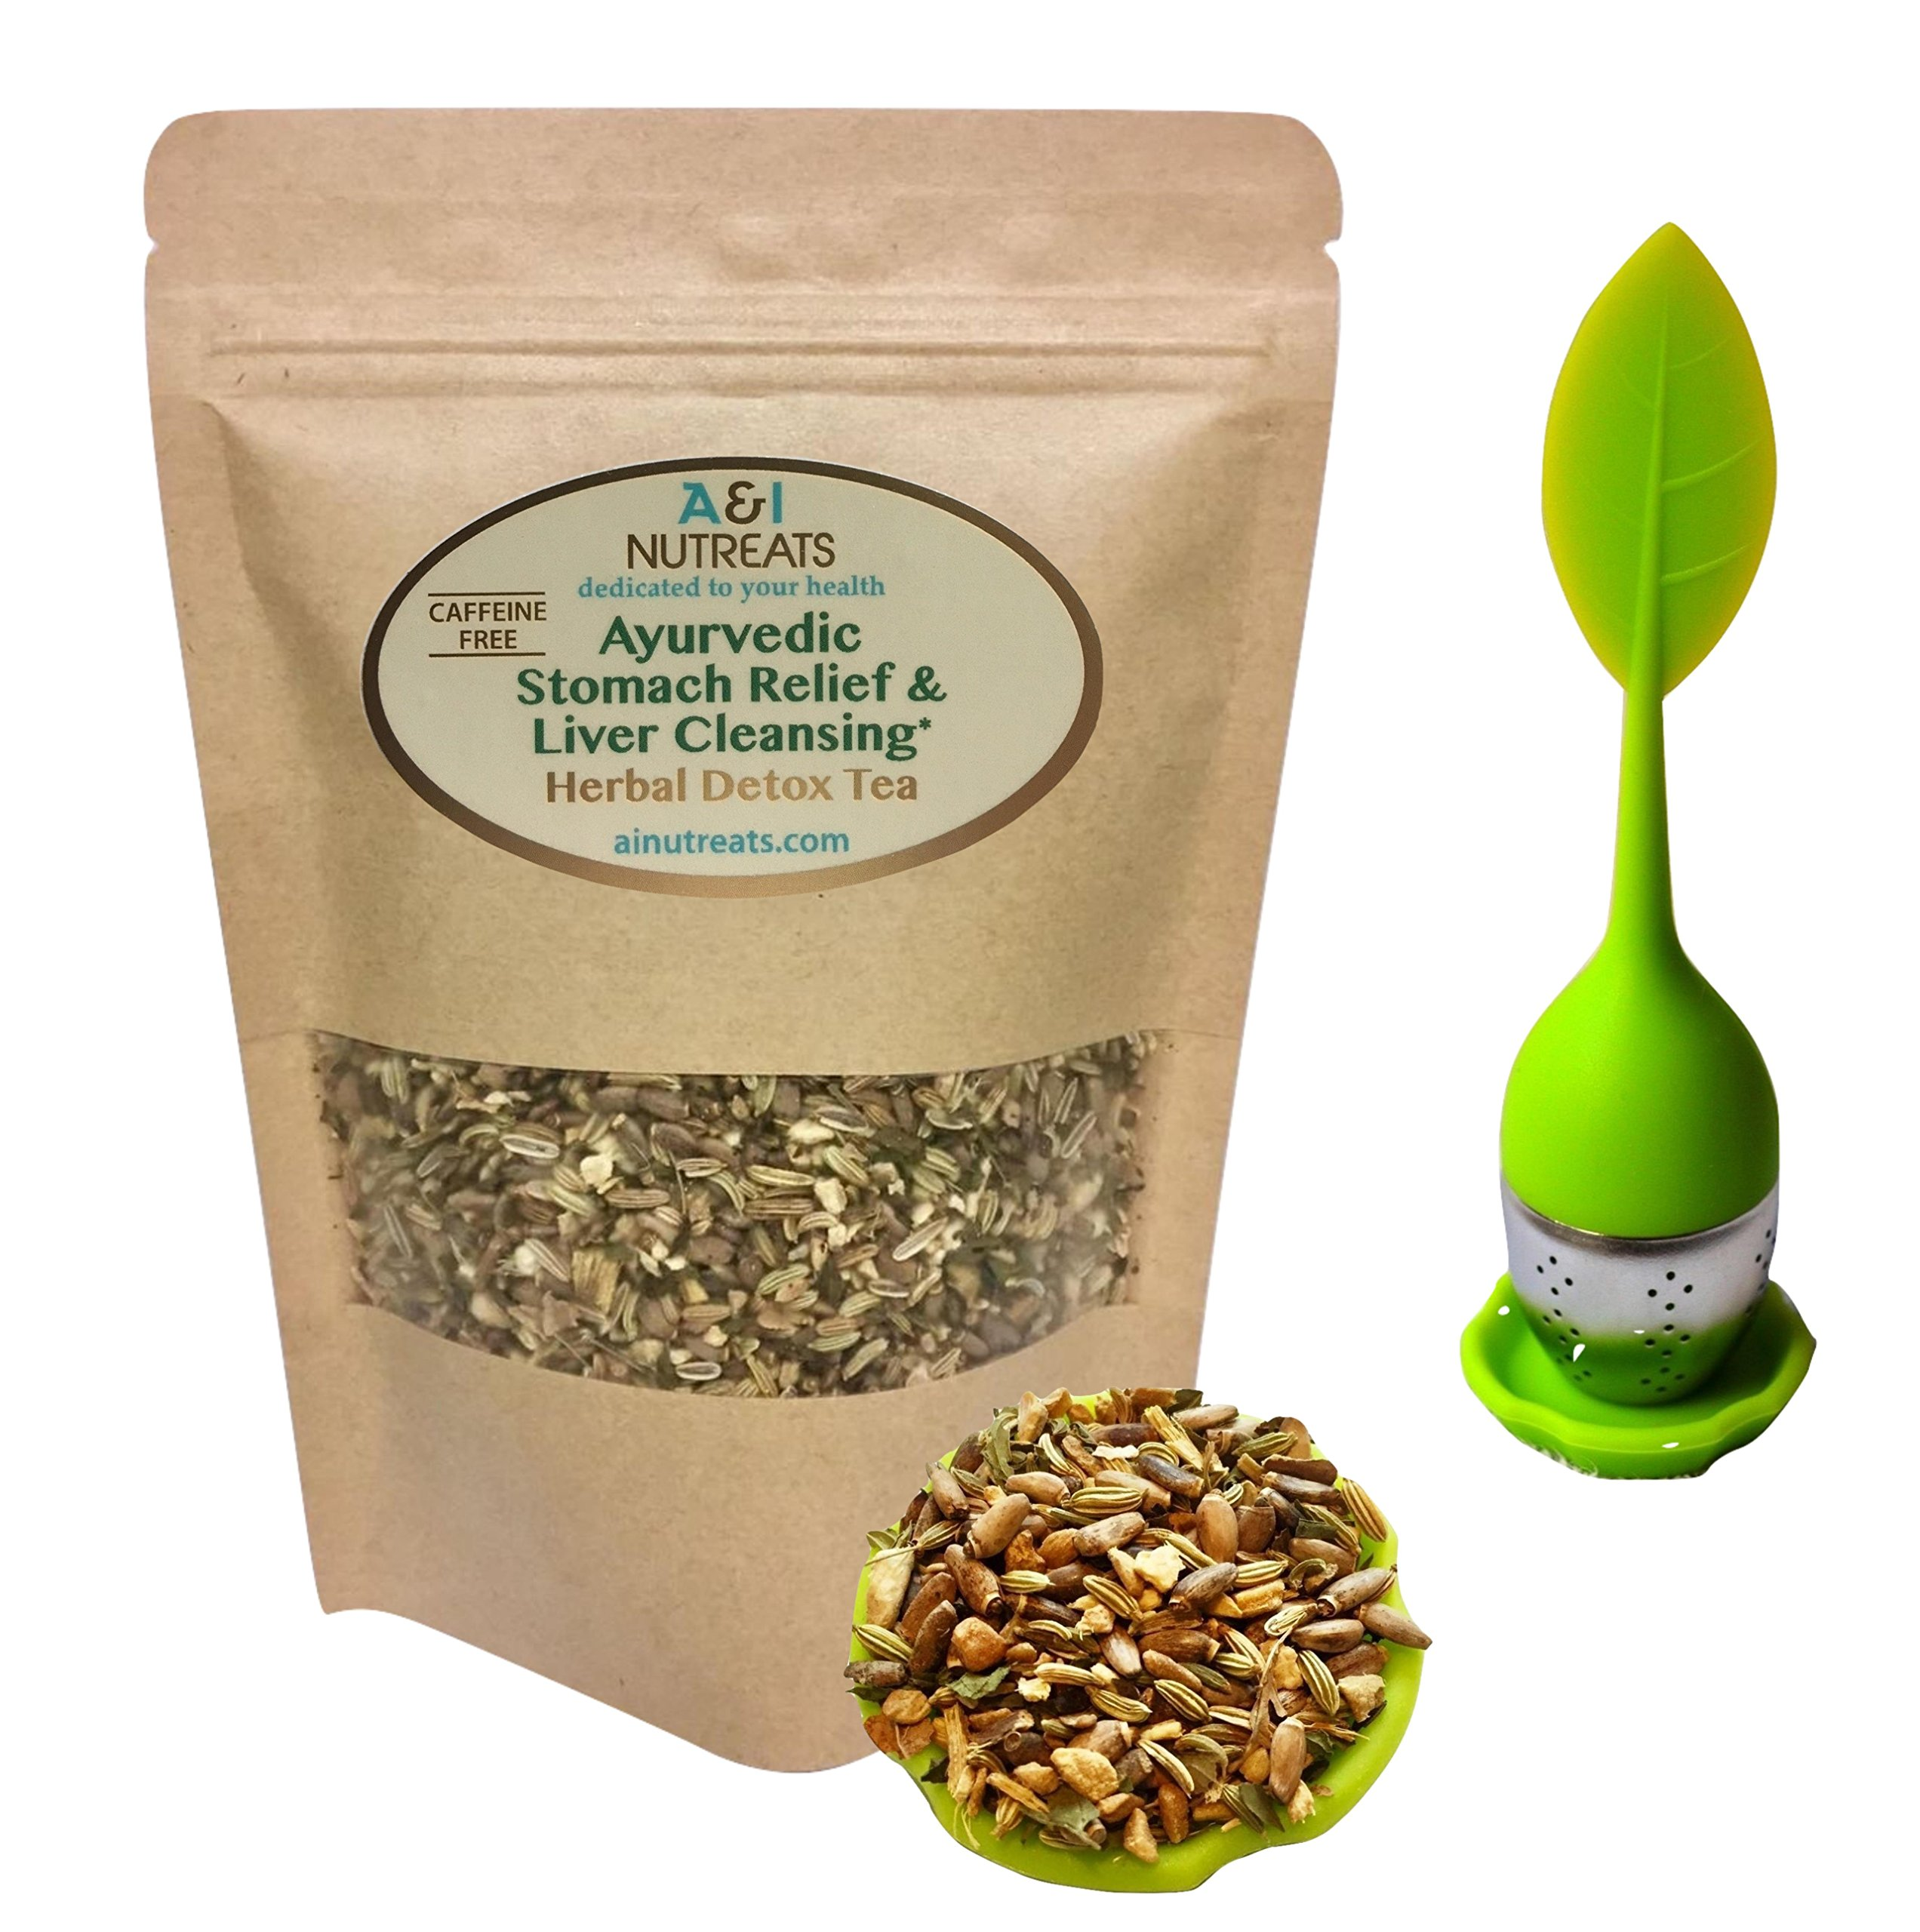 Ayurvedic Antacid Stomach Relief & Liver Cleansing Detox tea - Organic Loose Leaf Milk Thistle, Fennel, Ginger, Peppermint and Licorice Tea (Loose with tea Infuser, 2 oz.)